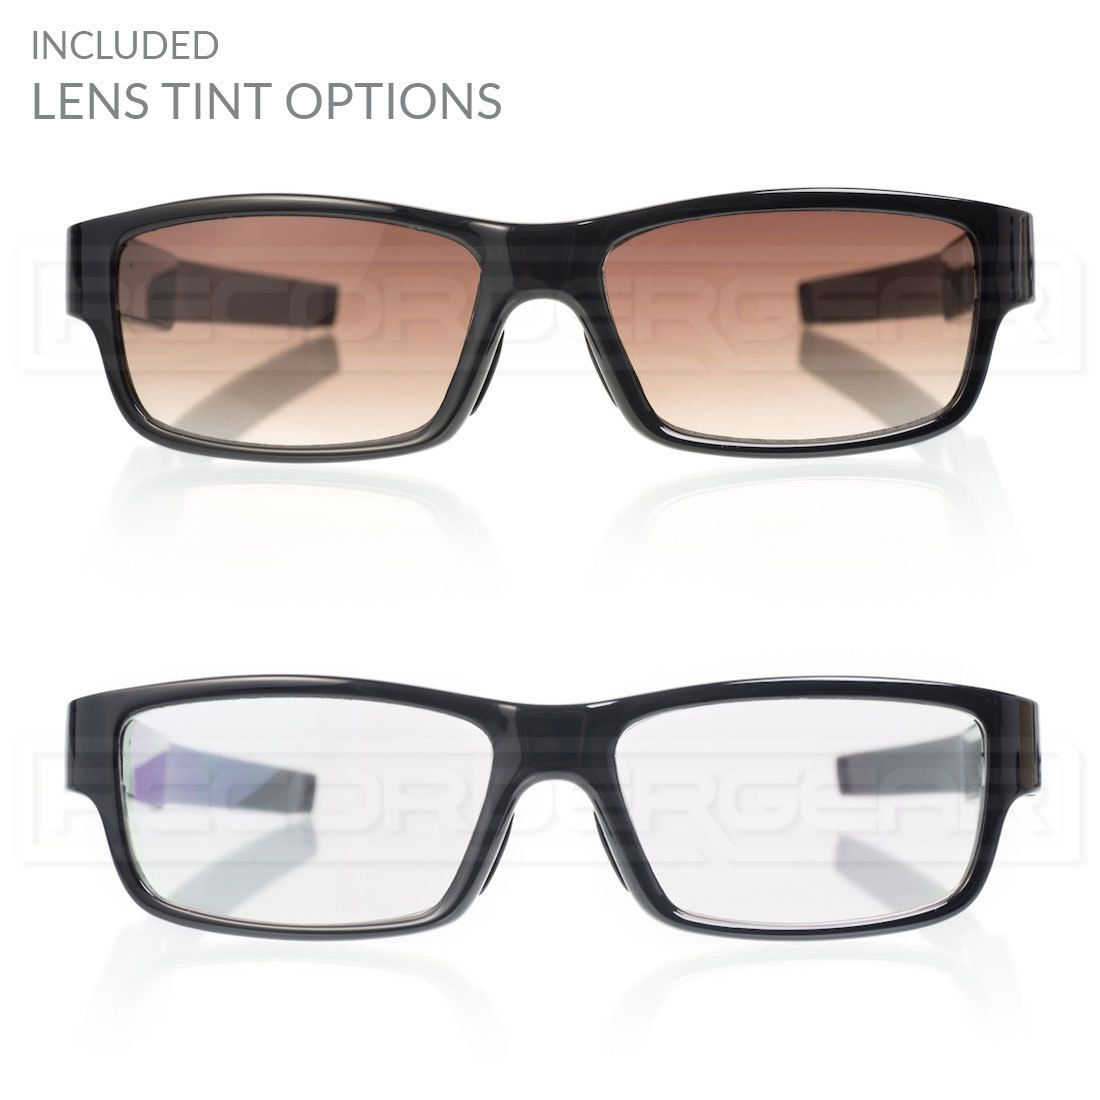 7fb04597a1 The CG1000 Camera Glasses includes optional tinted lenses More